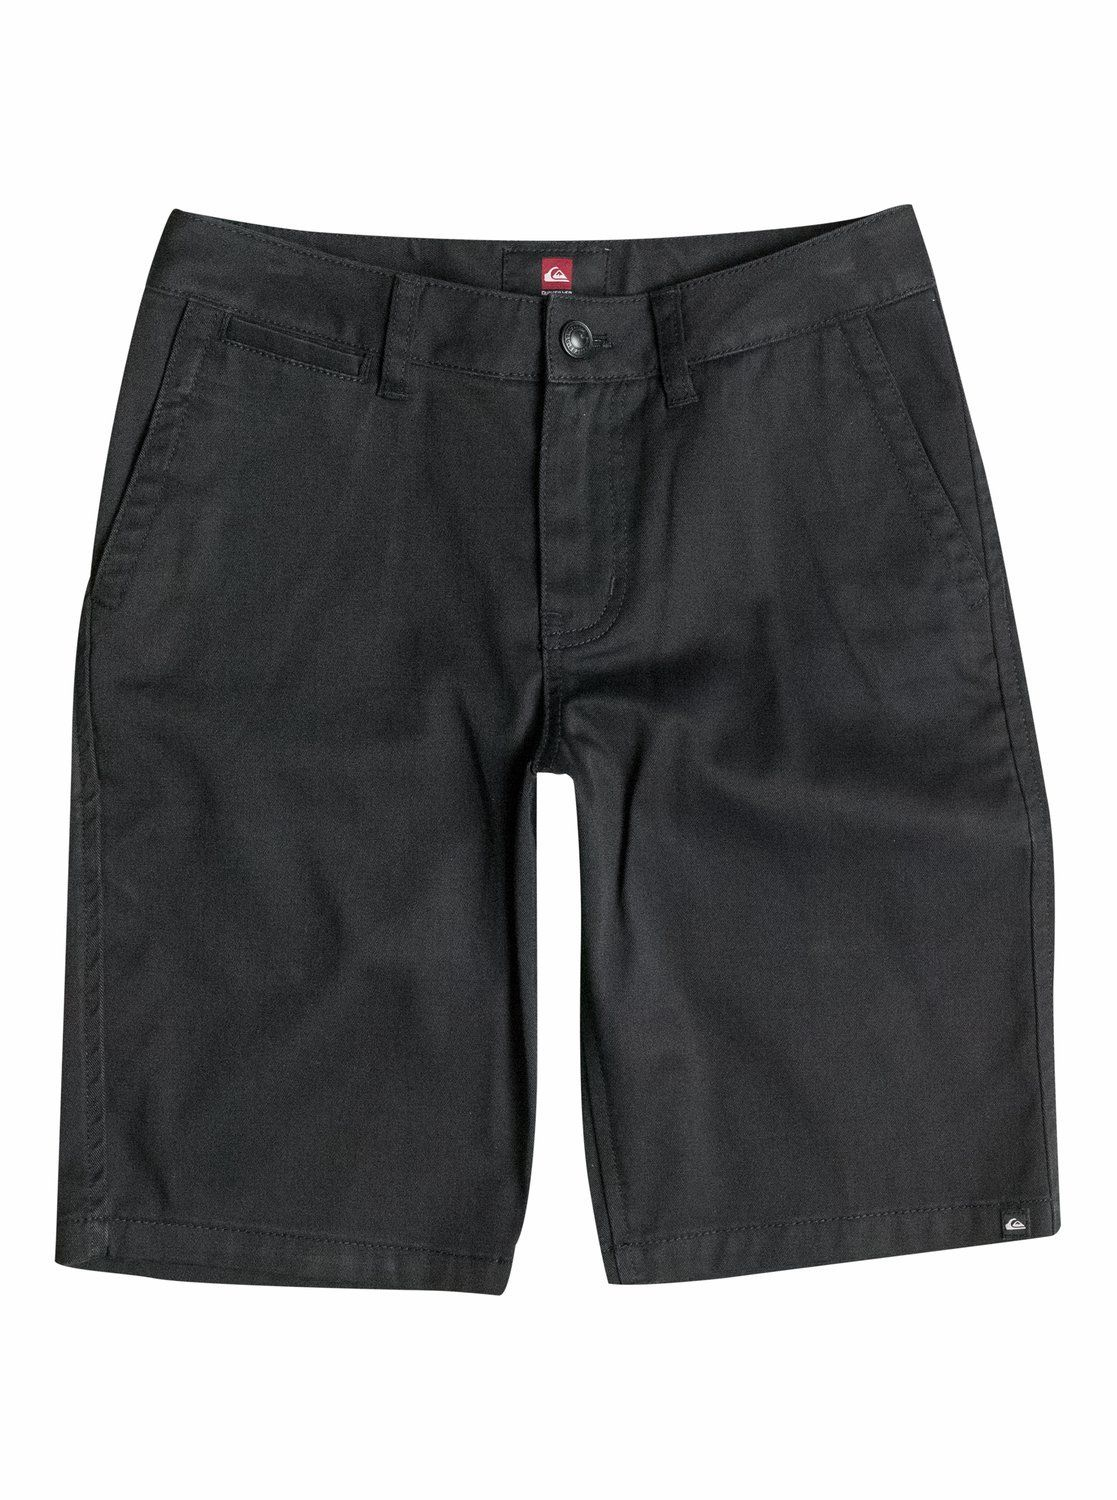 Quiksilver Big Boys' Union Chino Short, Black, 25. Signature Quiksilver surf style. Regular fit.